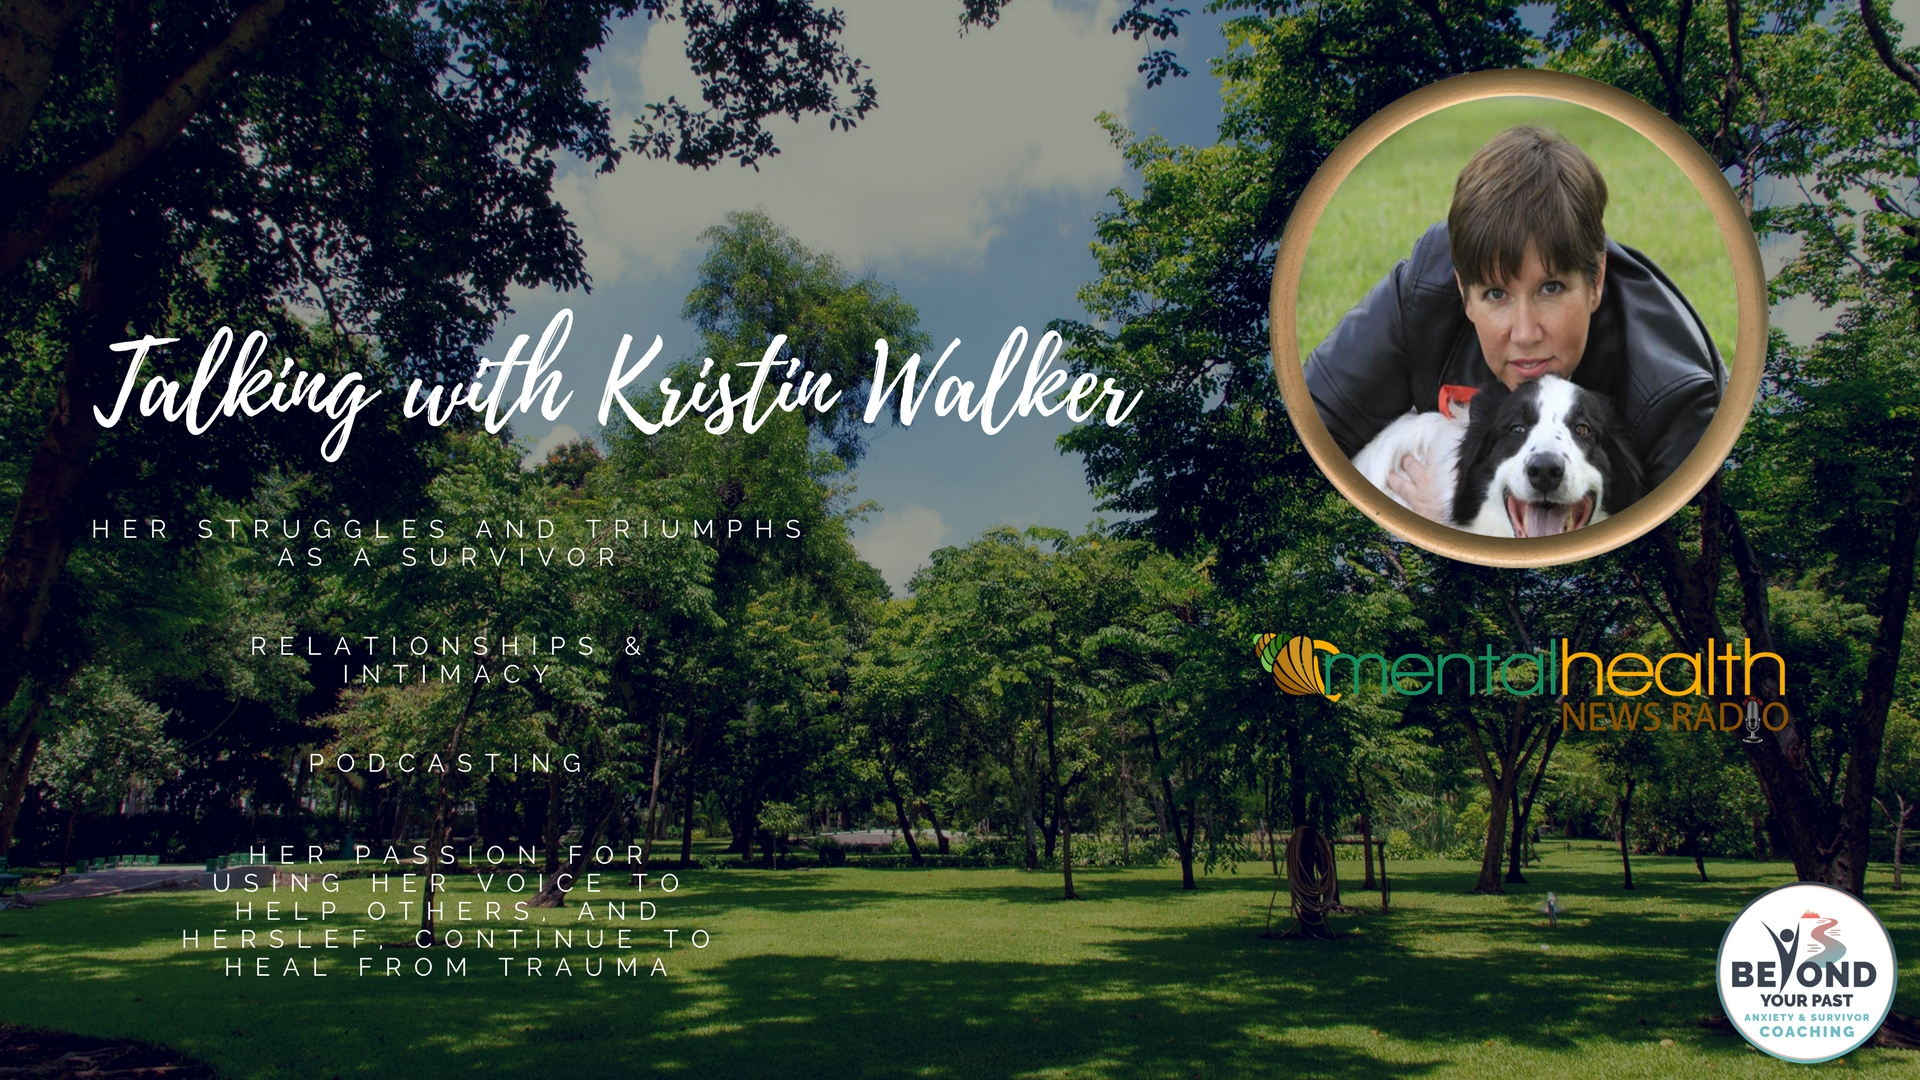 Kristin Walker; Survivor, CEO, and Passionate about using her voice for others.